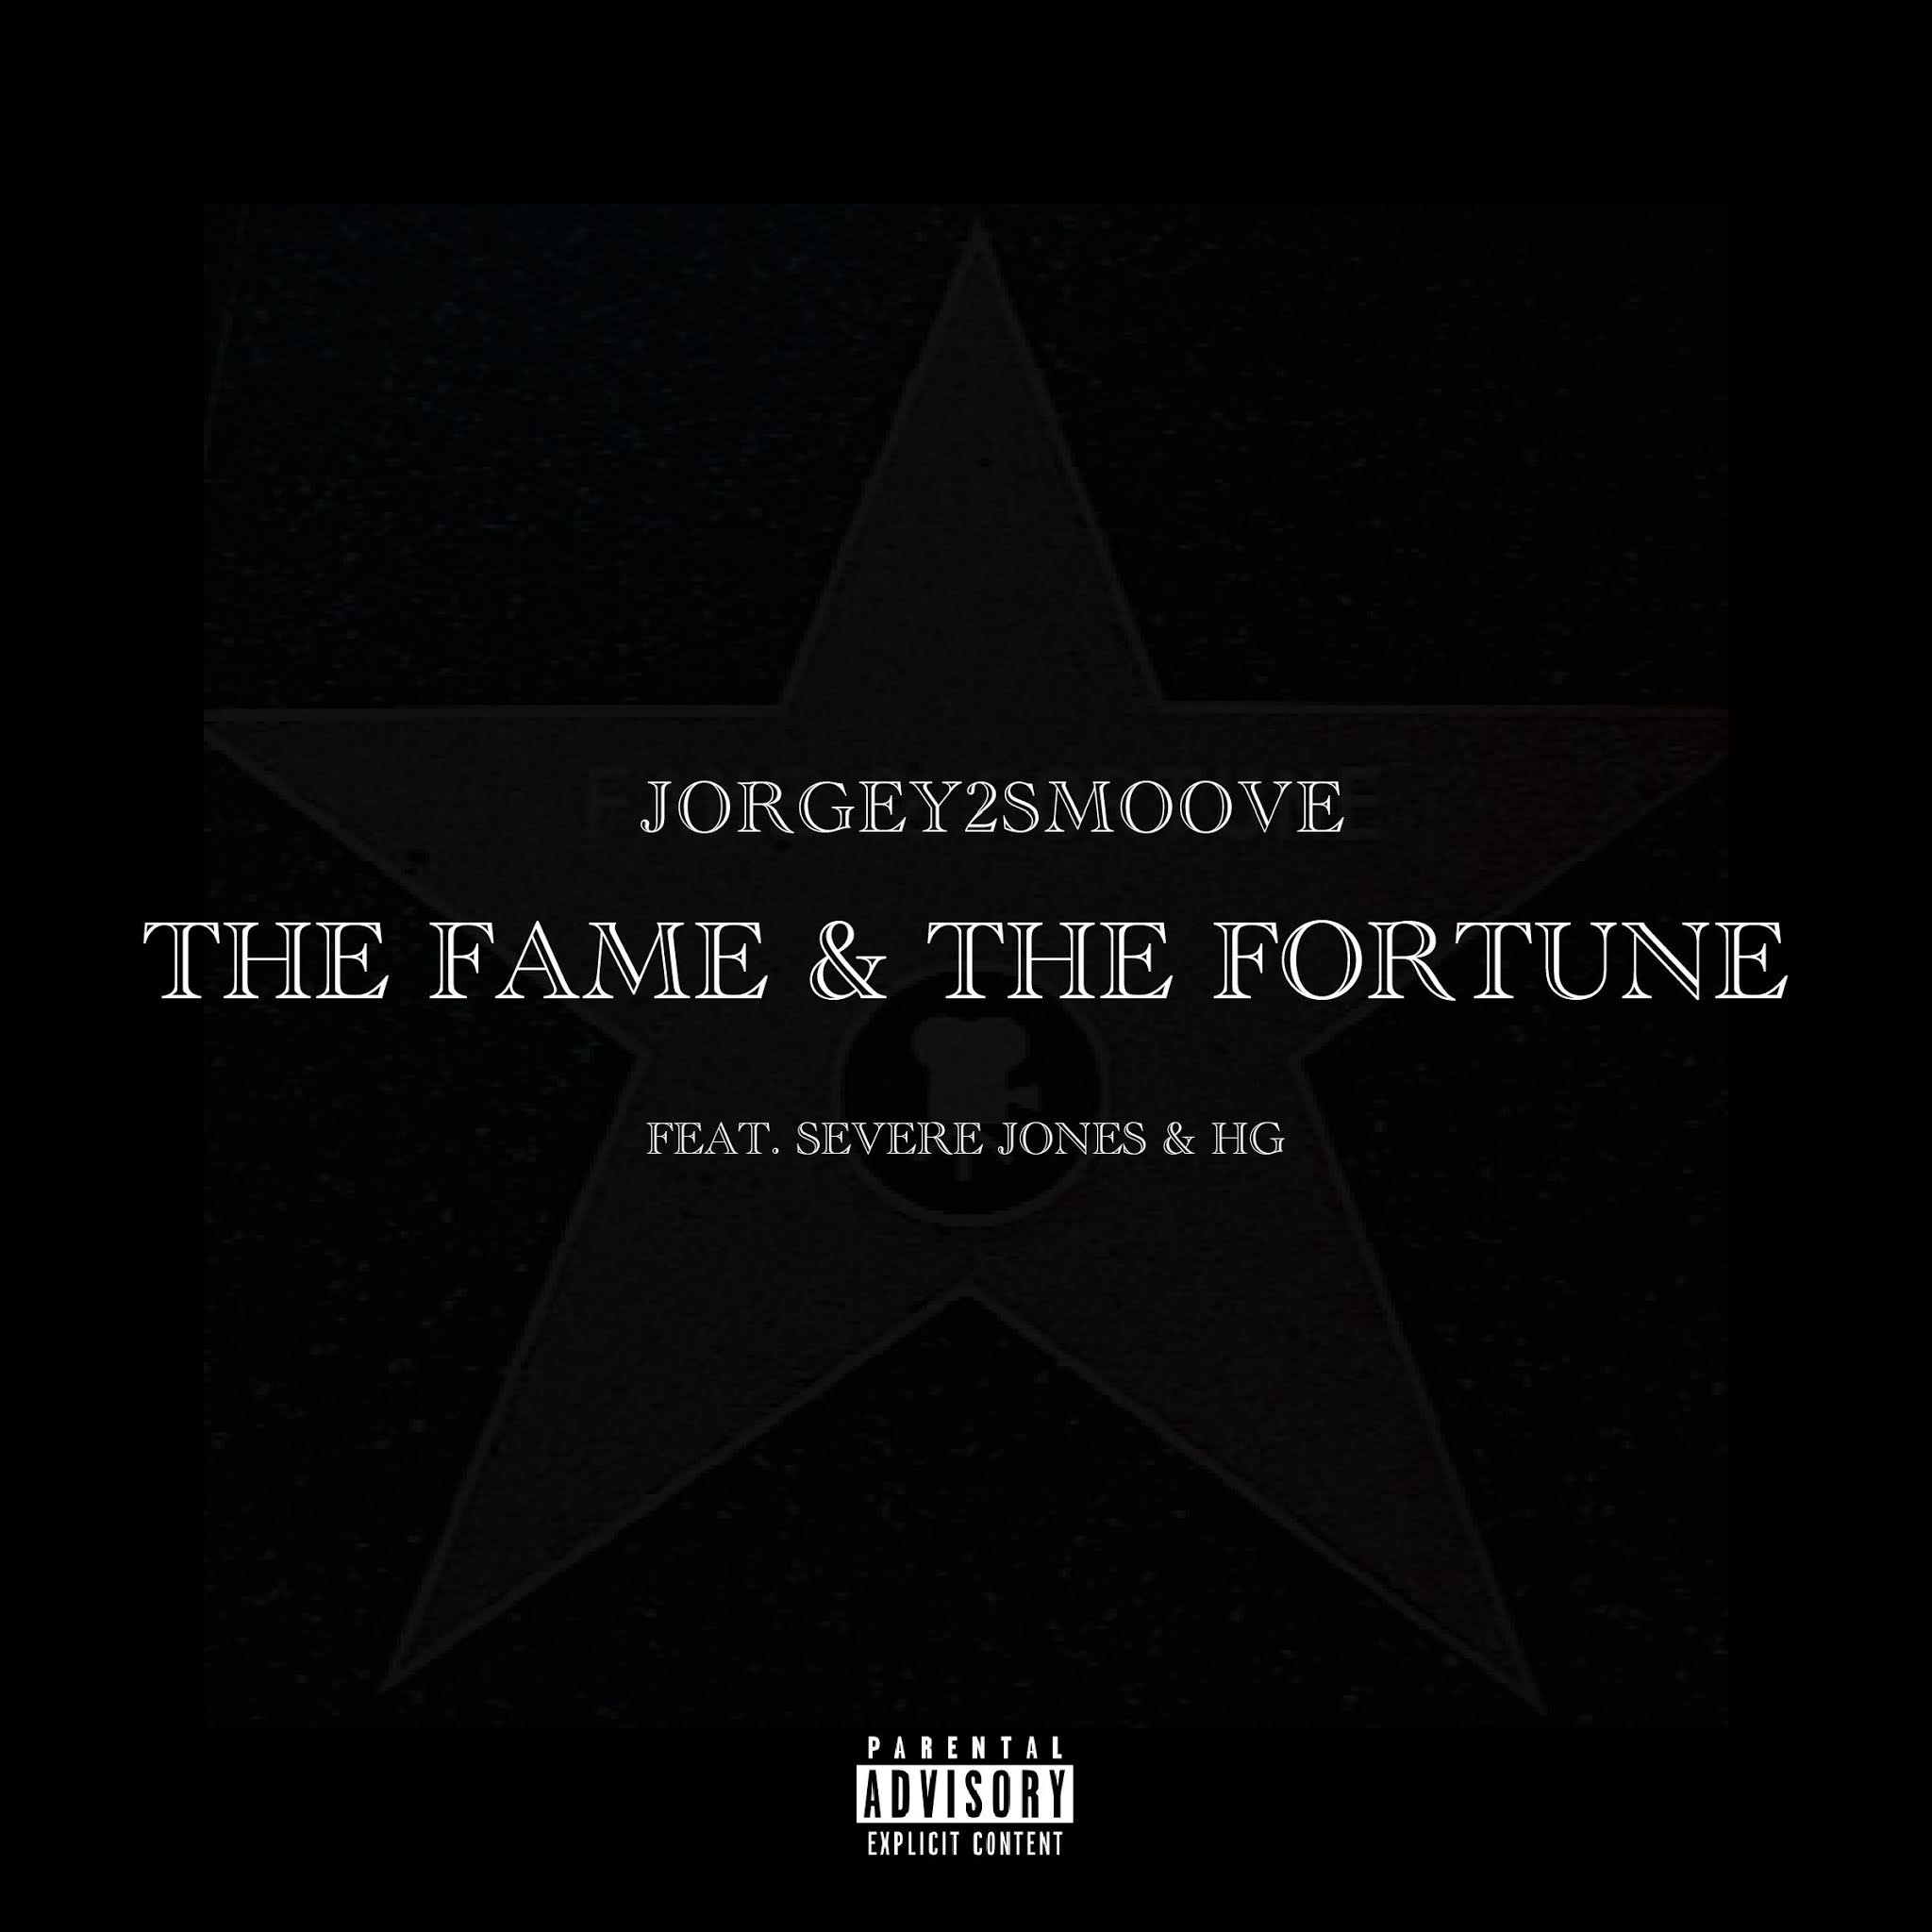 Jorgey2smoove The Fame & The Fortune Featuring Severe Jones & HG